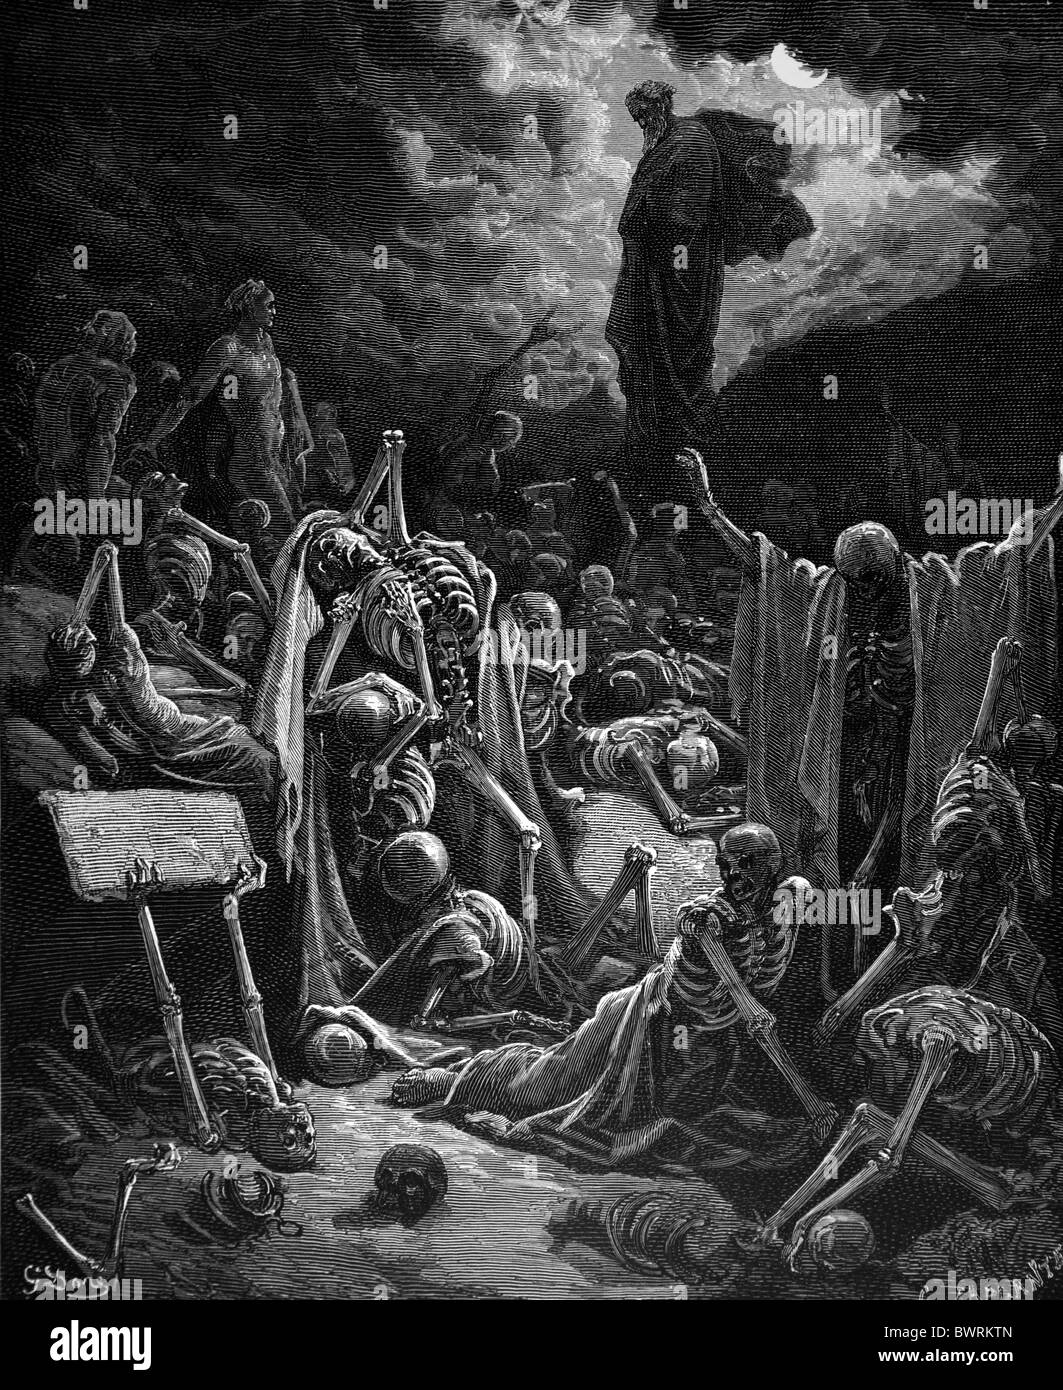 Gustave Doré; The Vision of the Valley of Dry Bones (Ezekiel Chap 37); Black and White Engraving - Stock Image